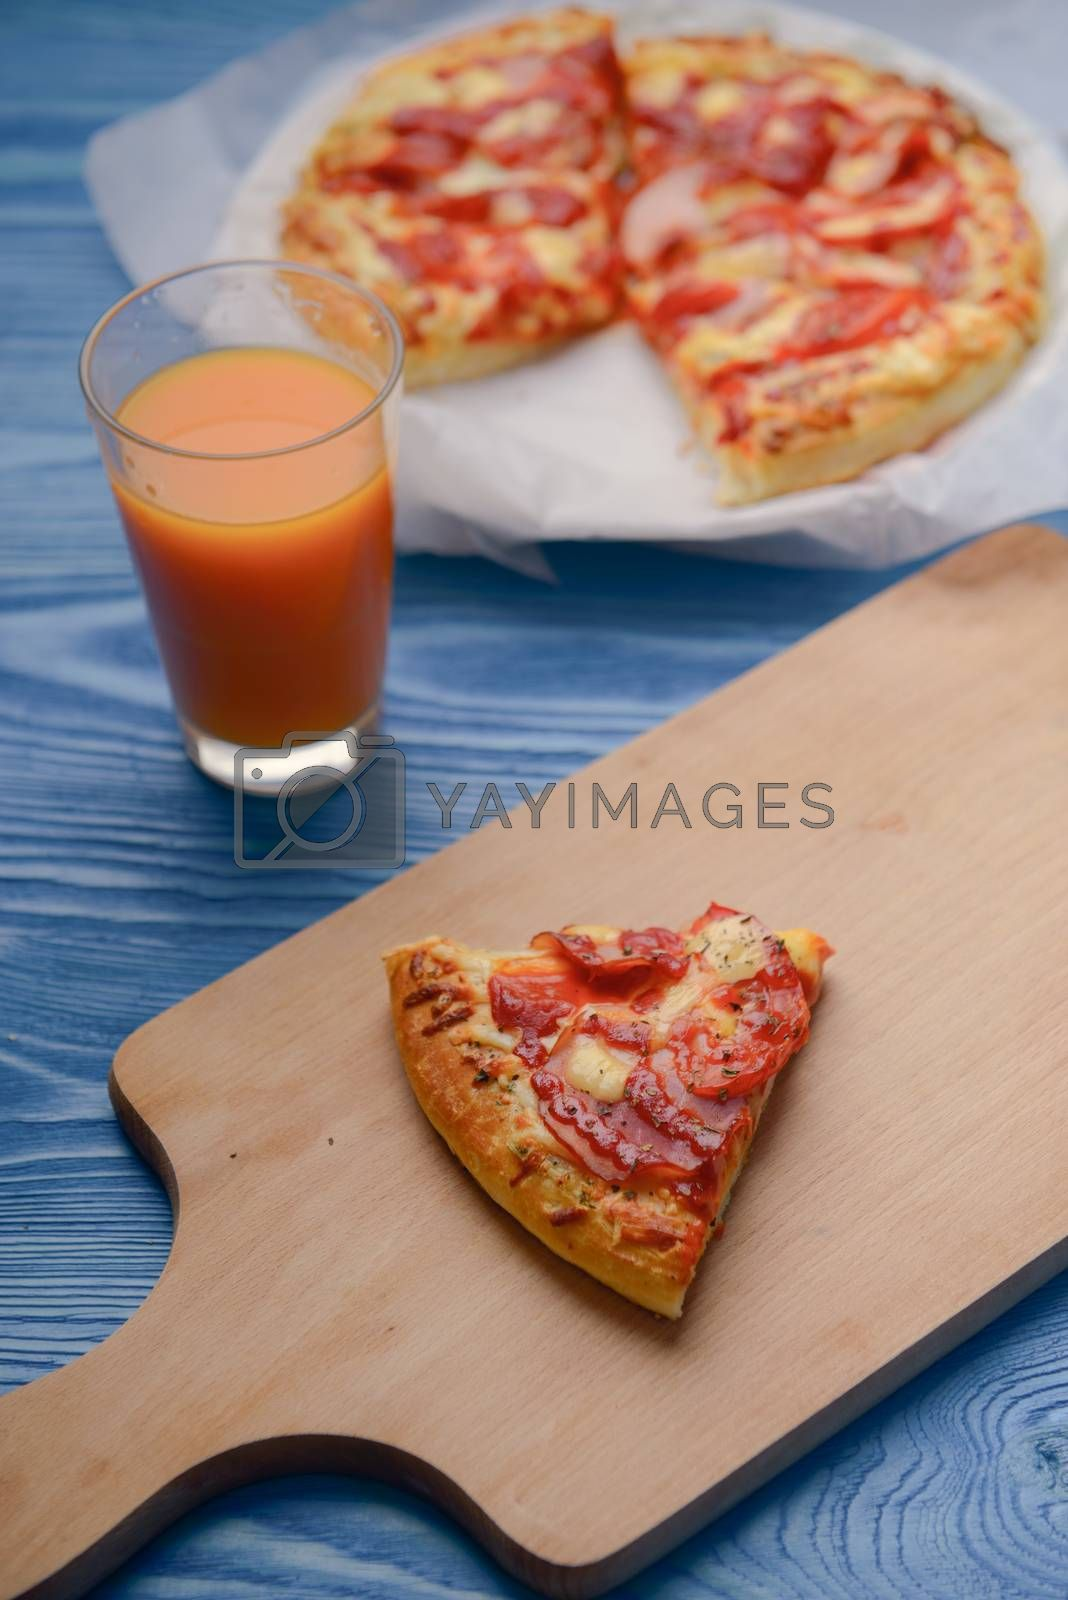 Homemade pepperoni pizza on the table. Tomato, cheese and ham main ingredients.